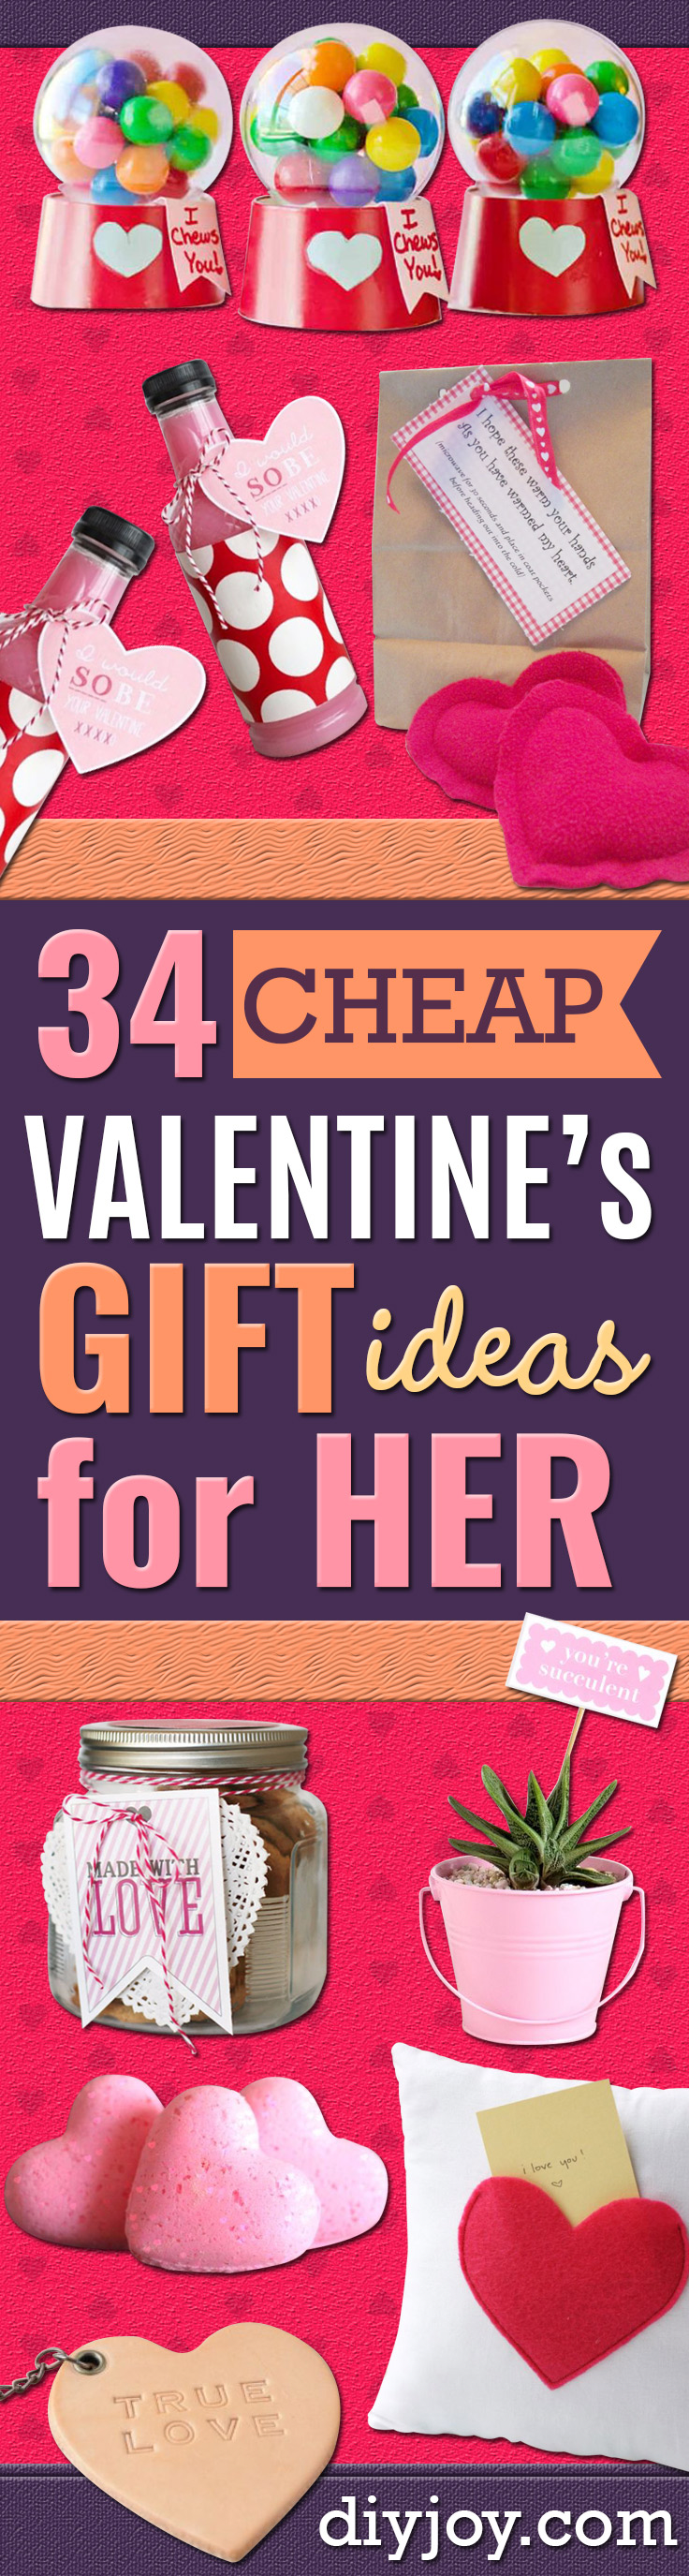 34 Diy Valentine S Gift Ideas For Her